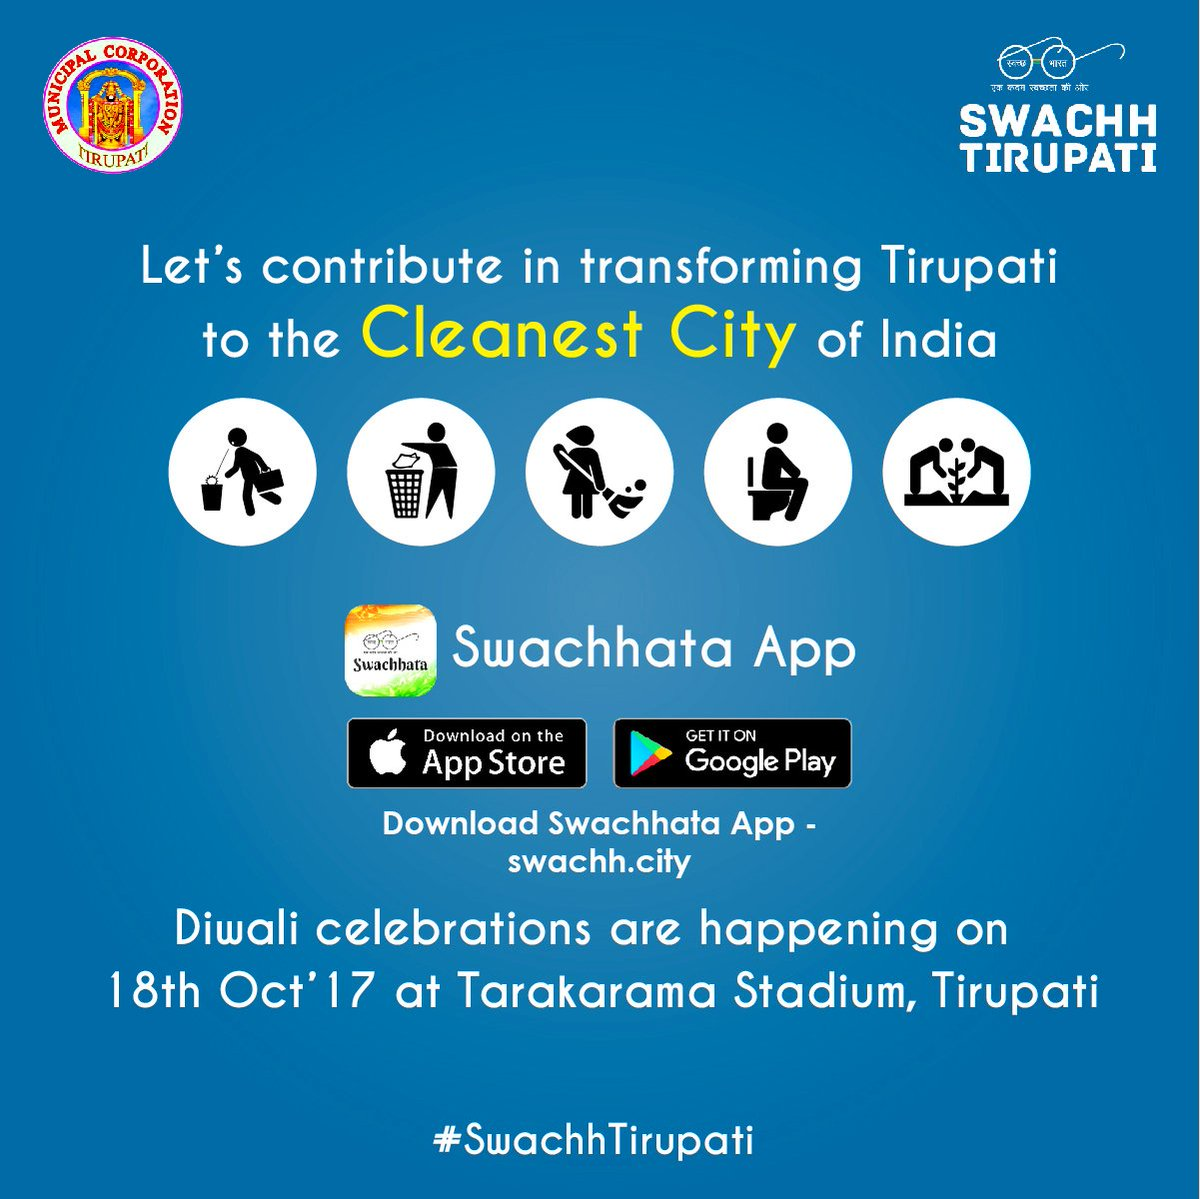 Stop complaining &amp; start participating in transforming Tirupati to the cleanest city of India.  #SwachhTirupati #SwachhBharat <br>http://pic.twitter.com/zQeM3MPZiJ